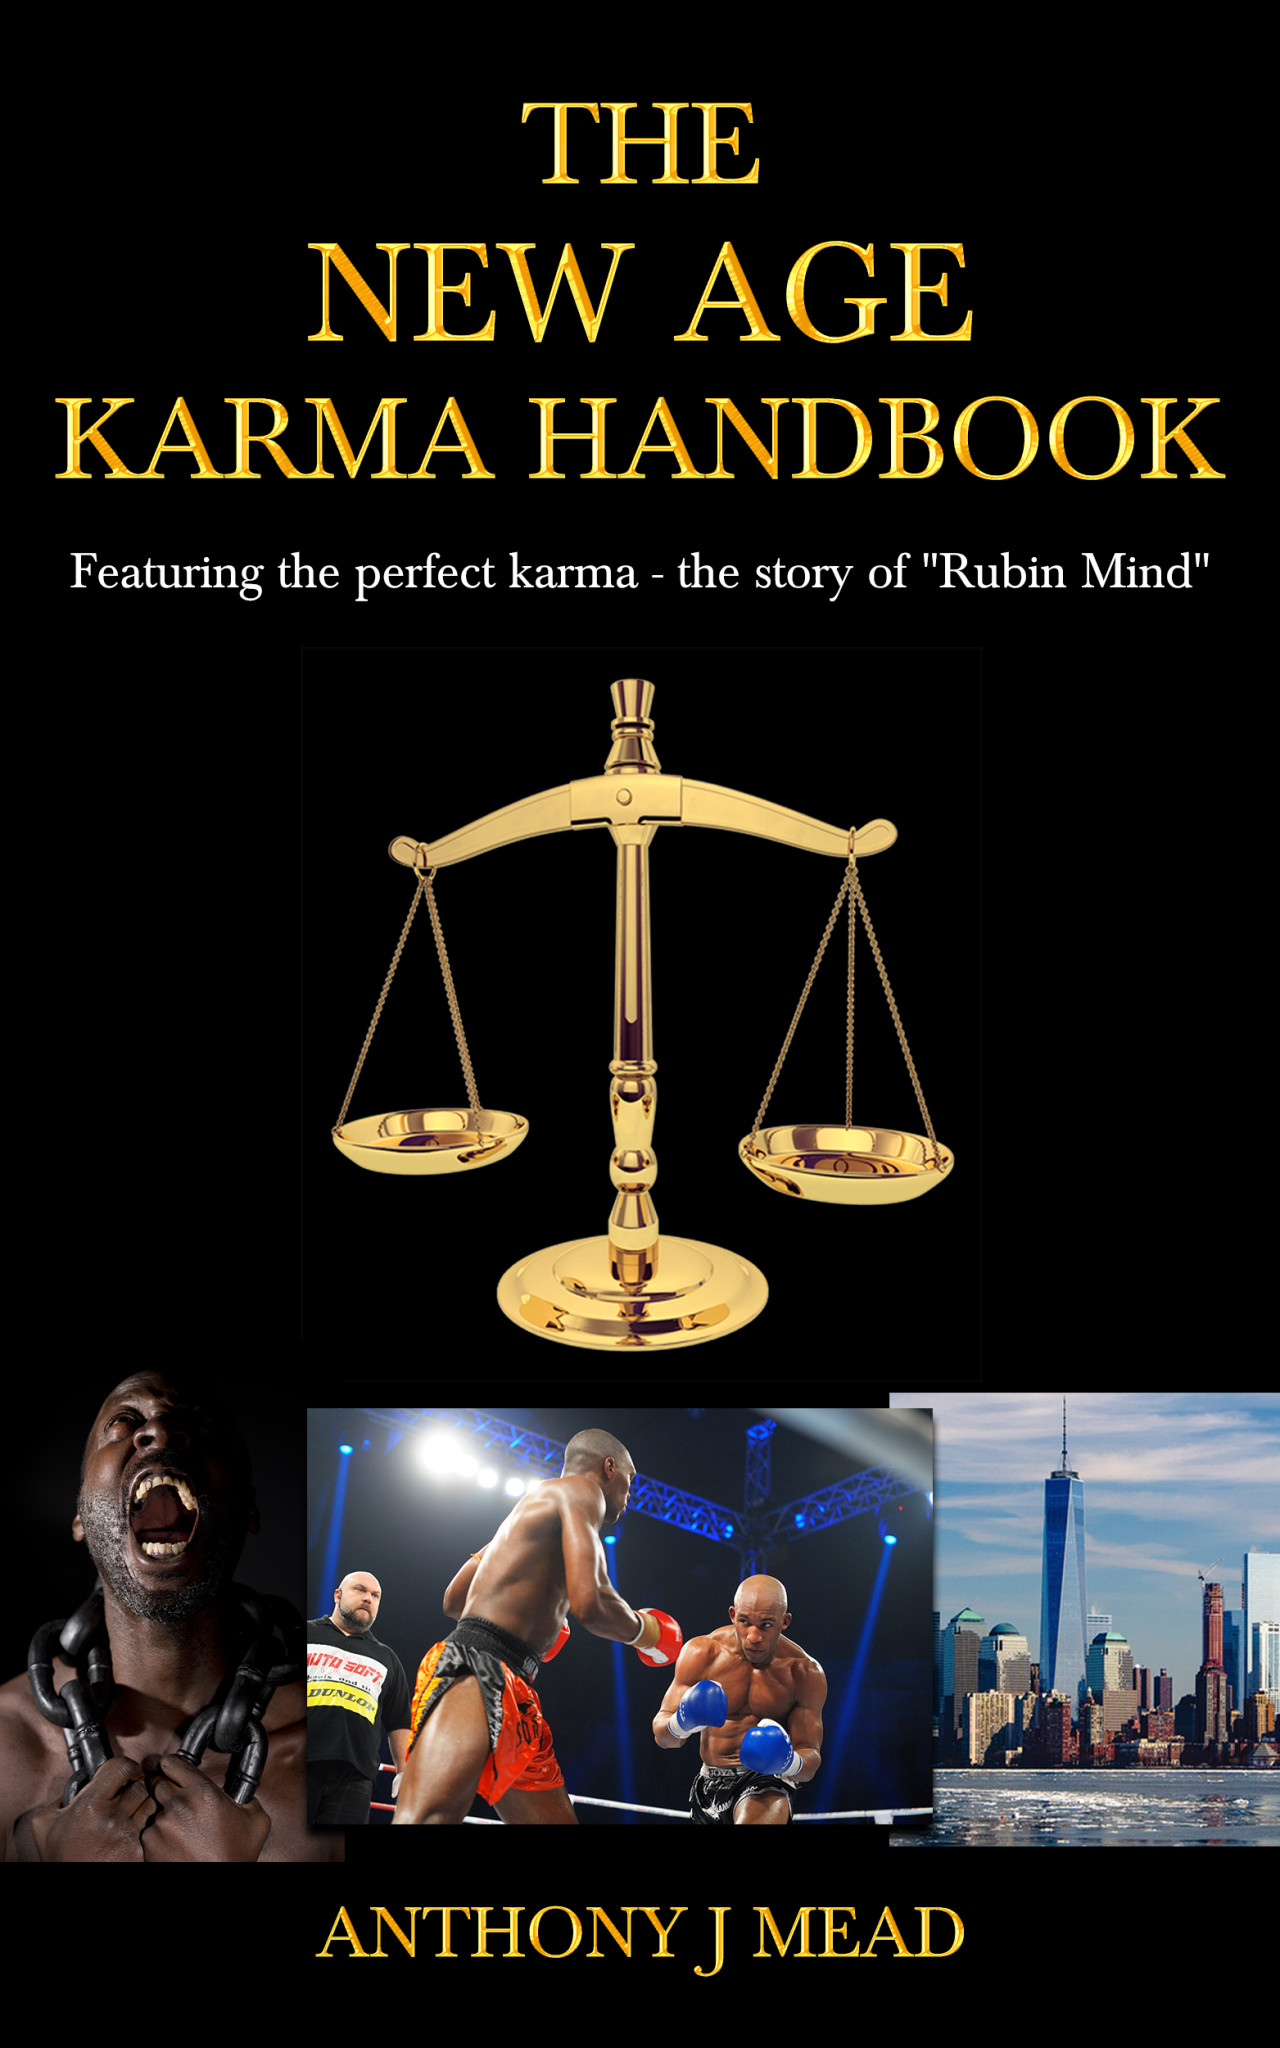 Ever given a thought about karma how it works in life trendy cover fandeluxe Gallery